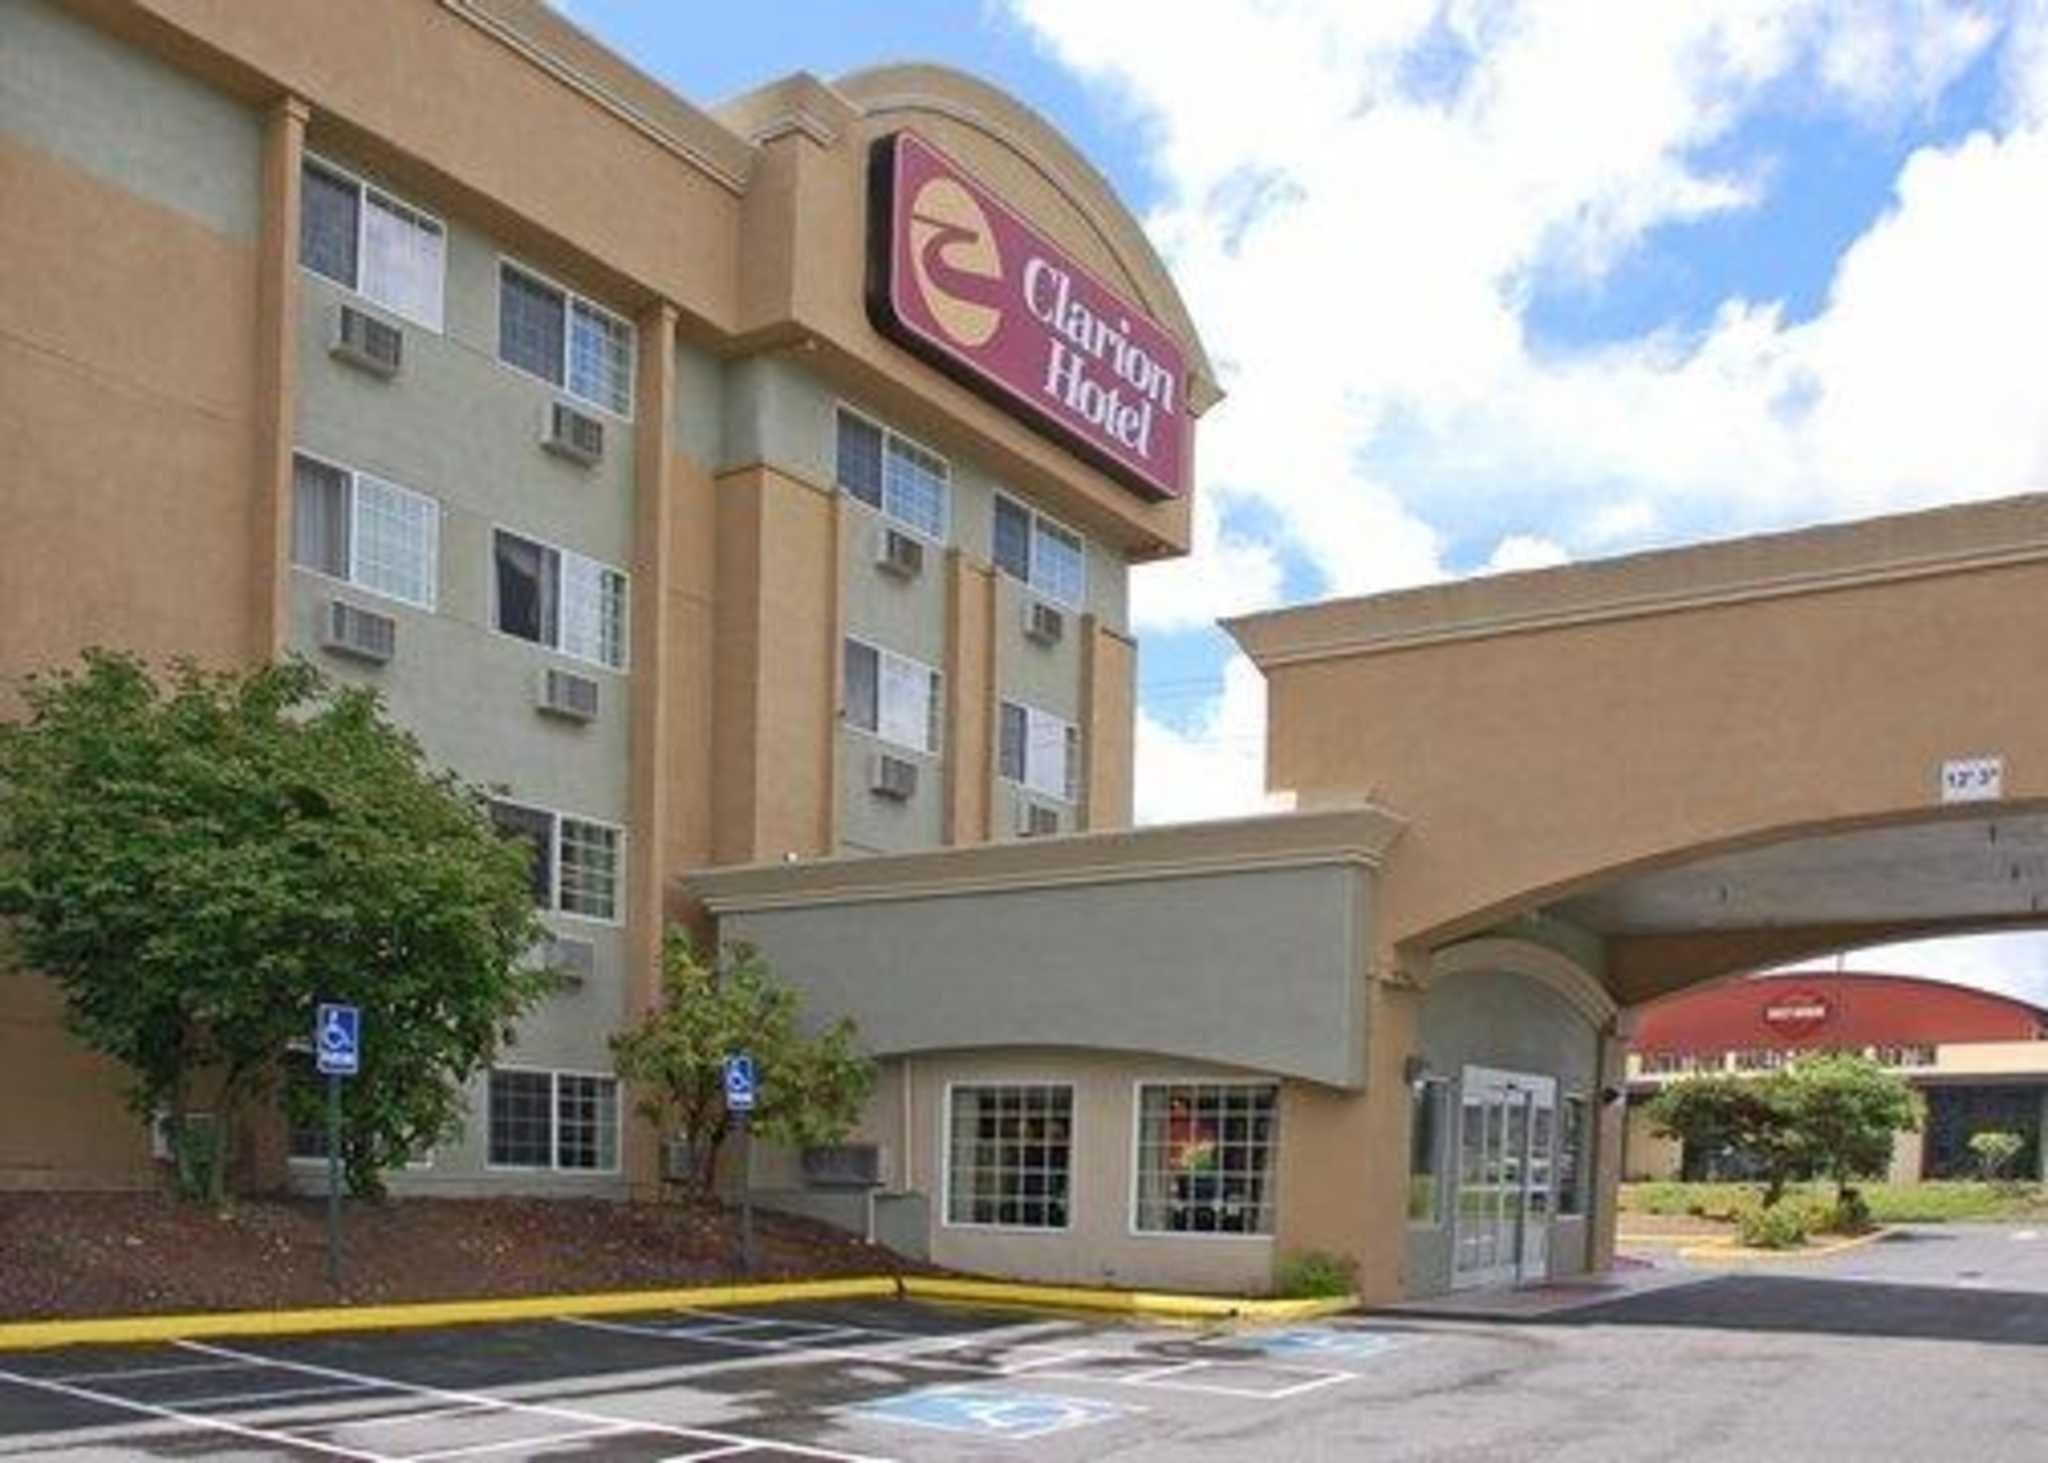 Clarion Hotel Coupons Near Me In Renton, WA 98055